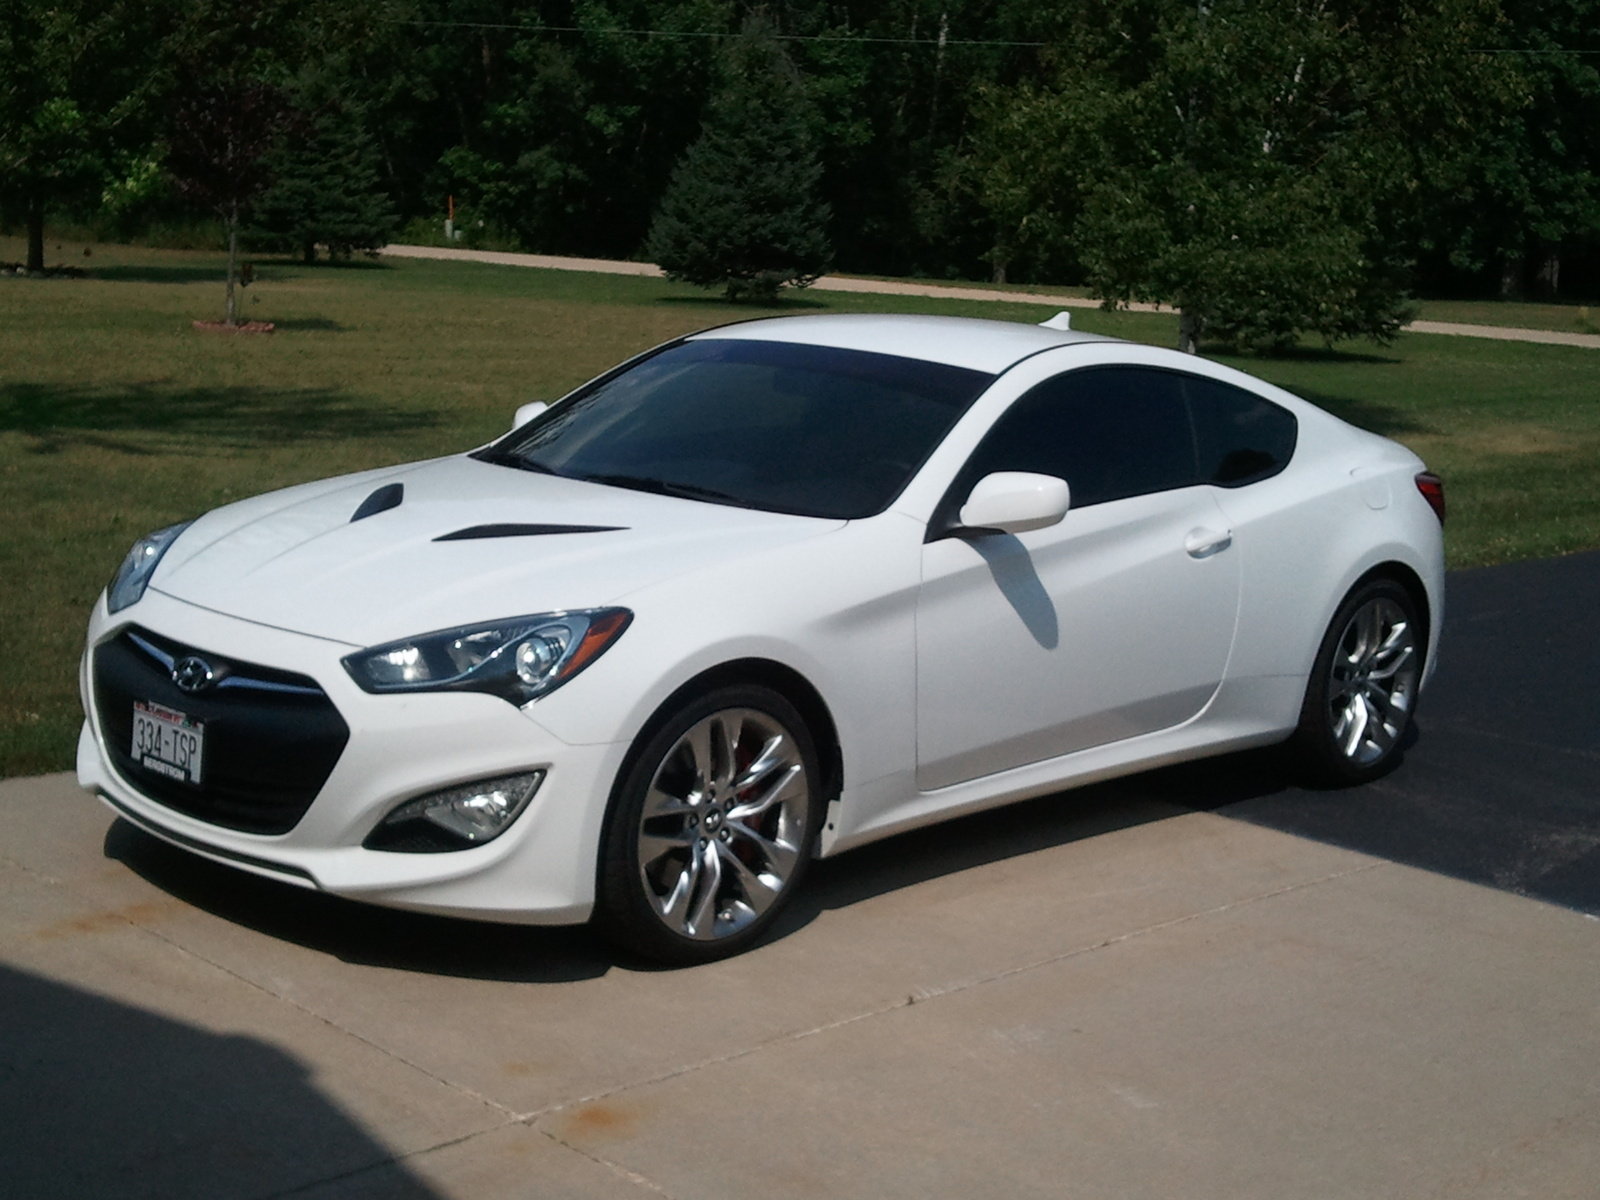 2017 hyundai genesis coupe images galleries with a bite. Black Bedroom Furniture Sets. Home Design Ideas